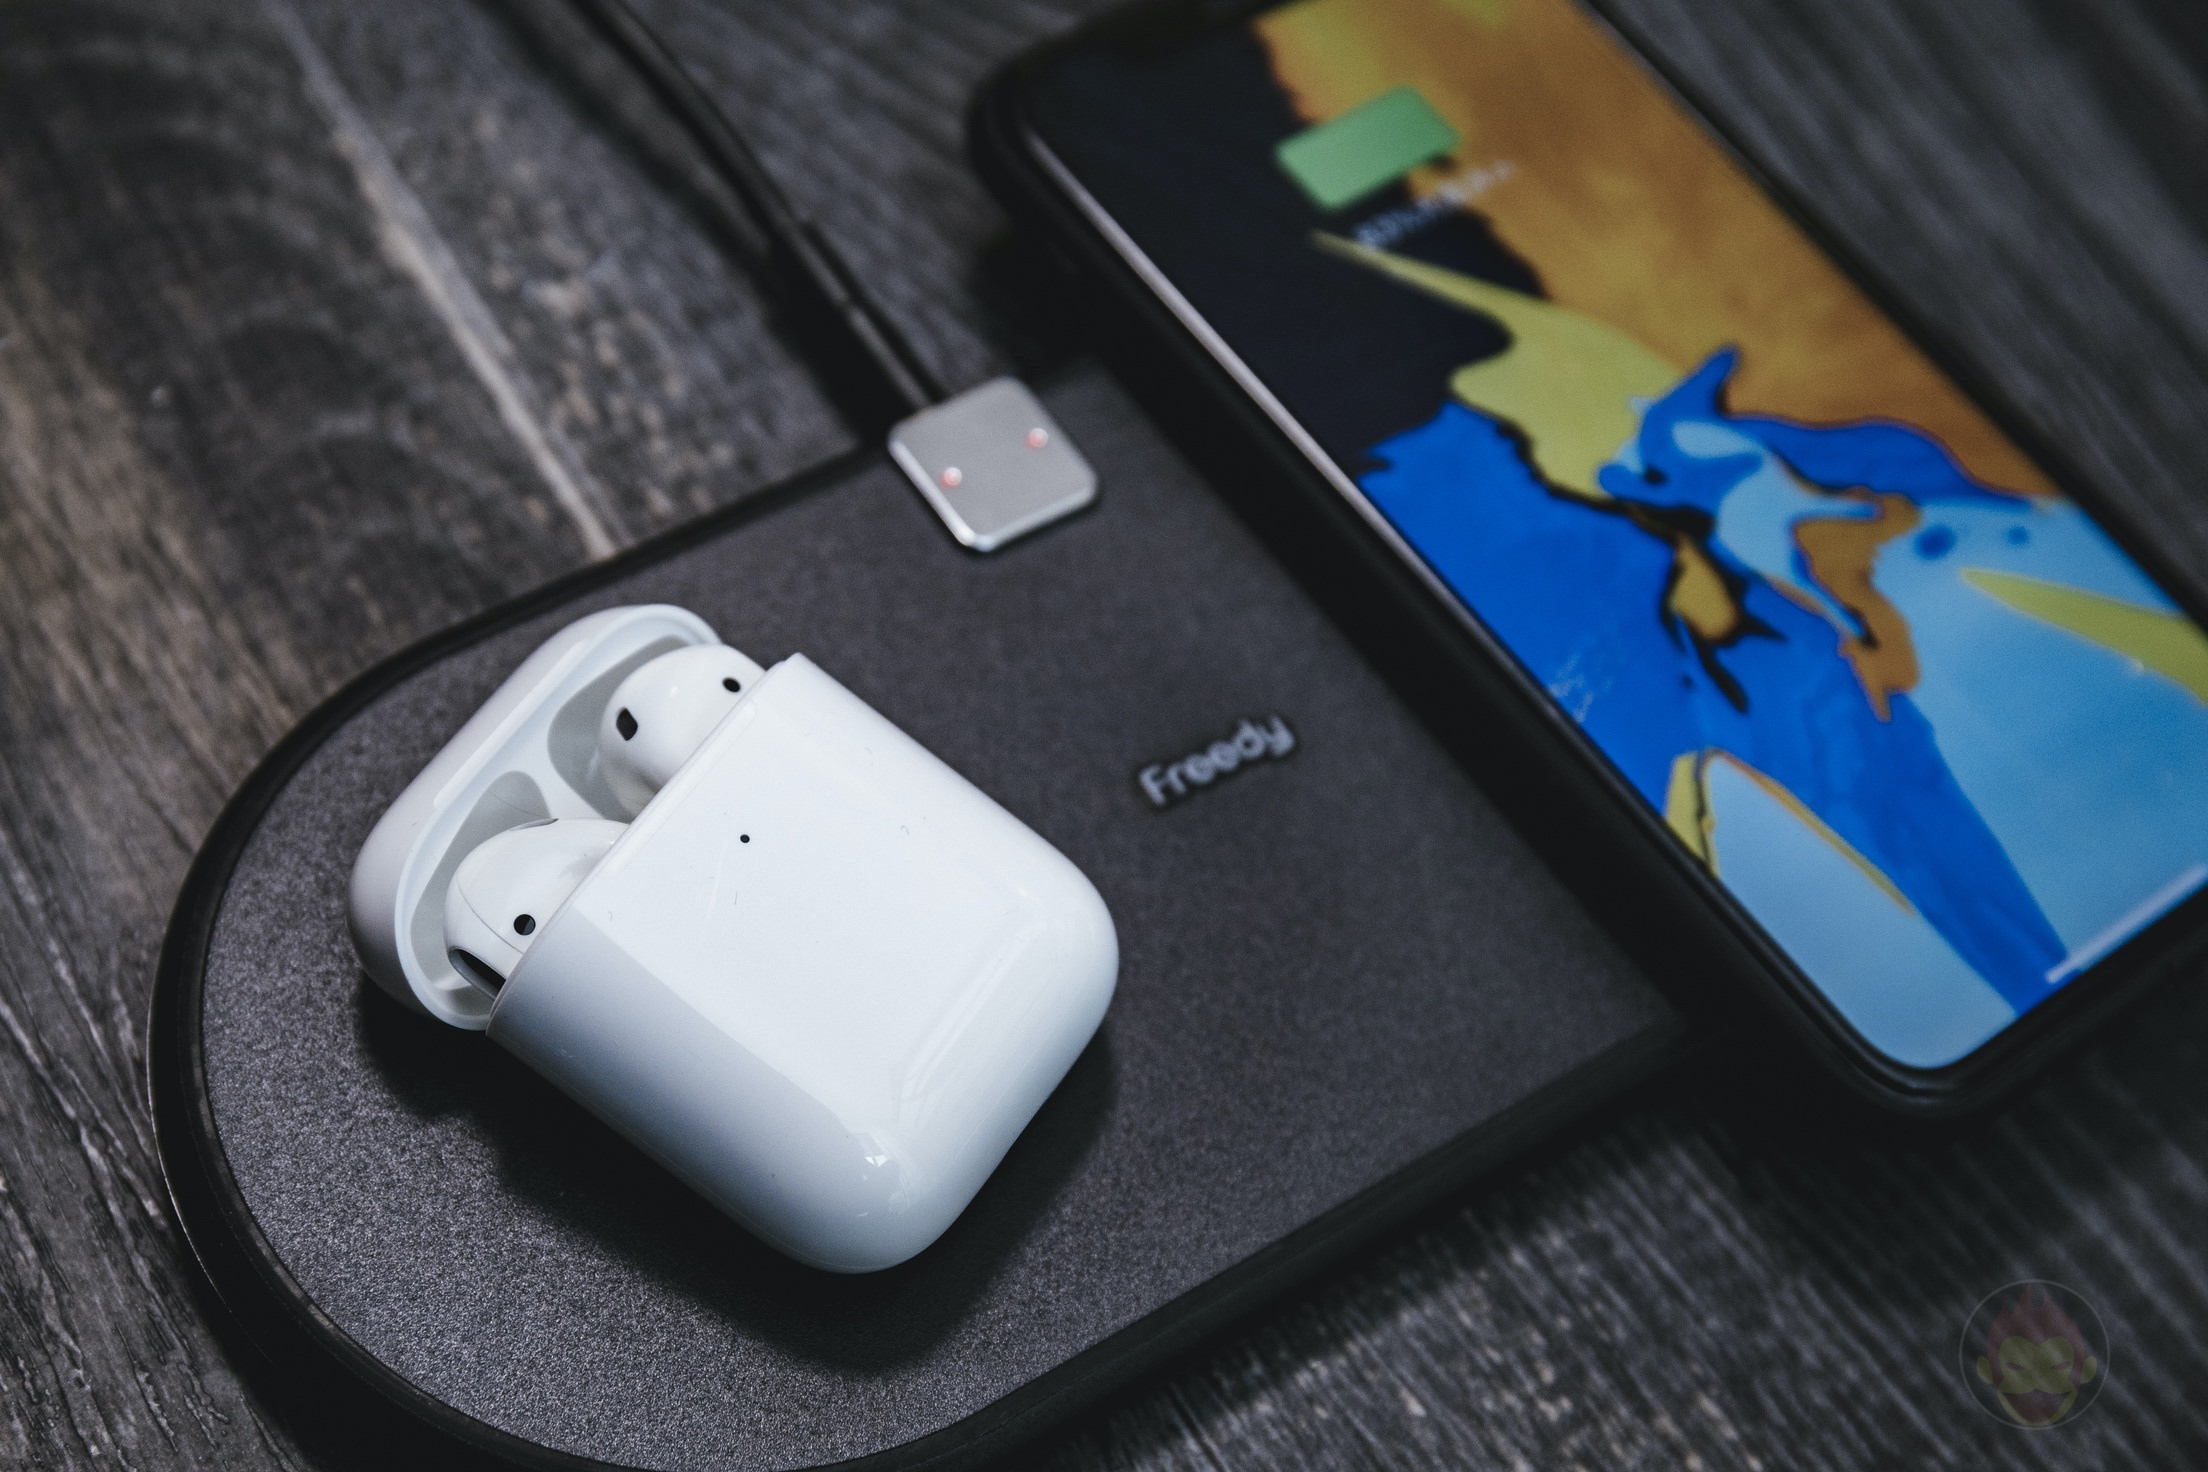 AirPods-2nd-Generation-2019-Review-26.jpg